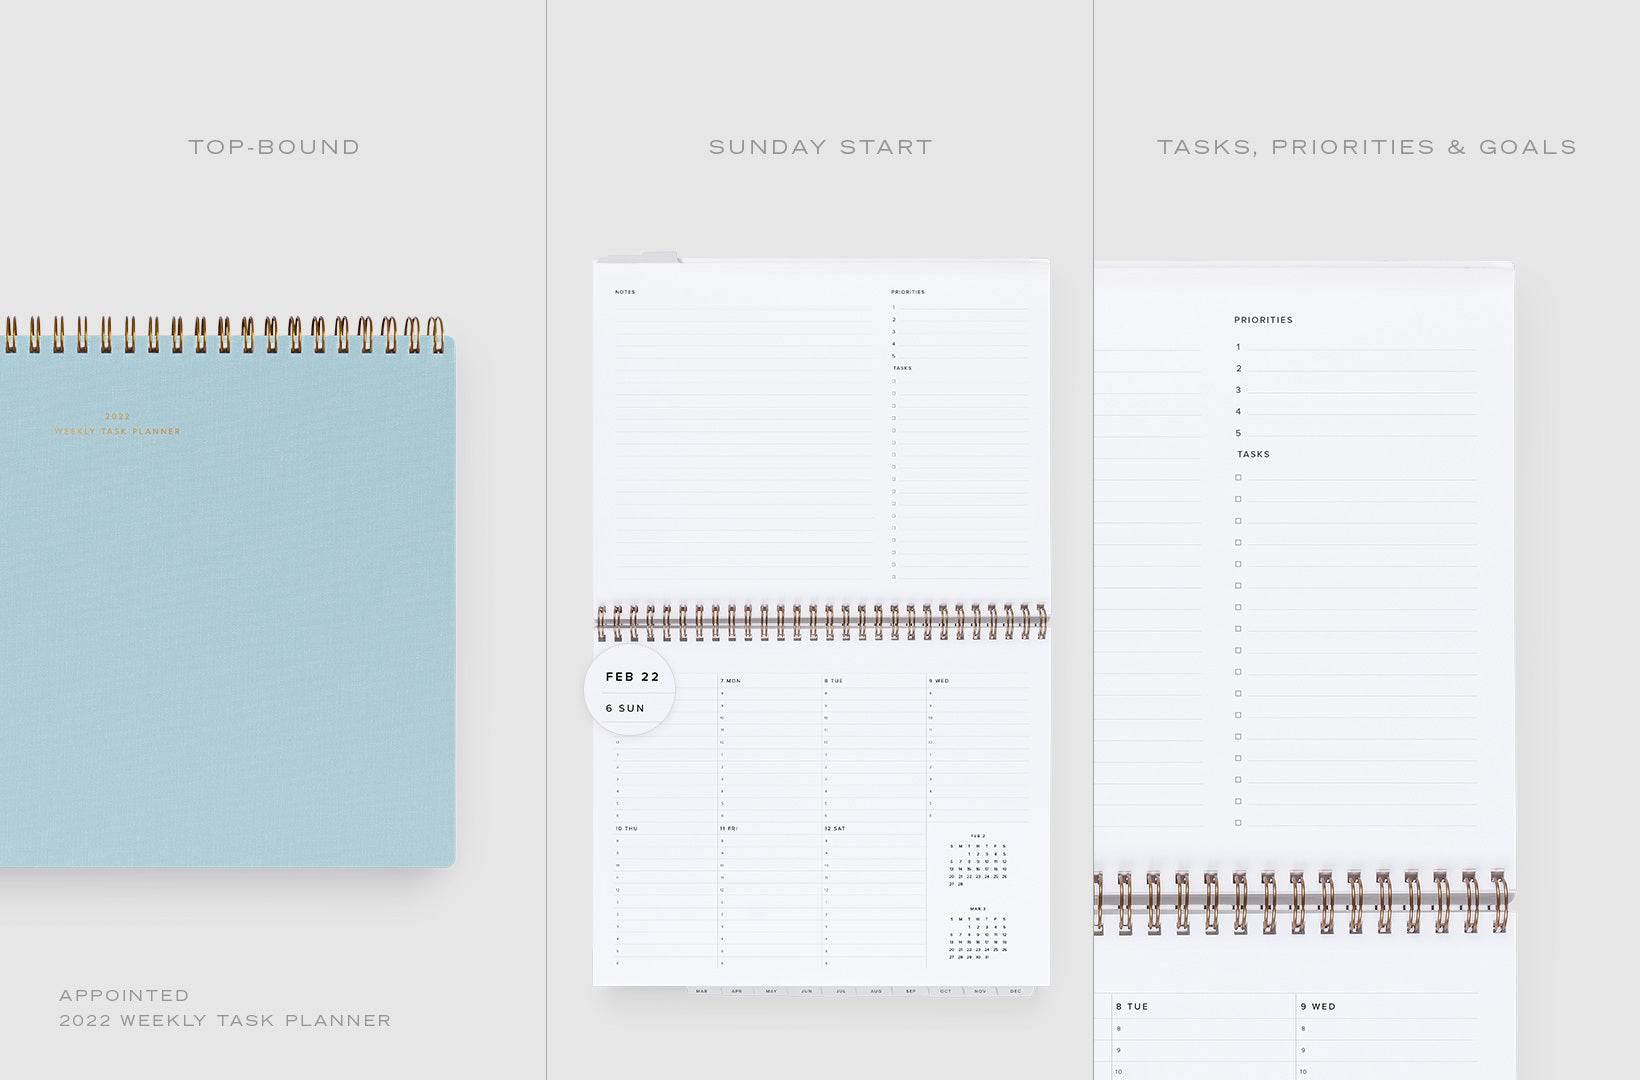 A 3-part image details features of the Weekly Task Planner including its top-spiral, Sunday start, and task & priorities lists.